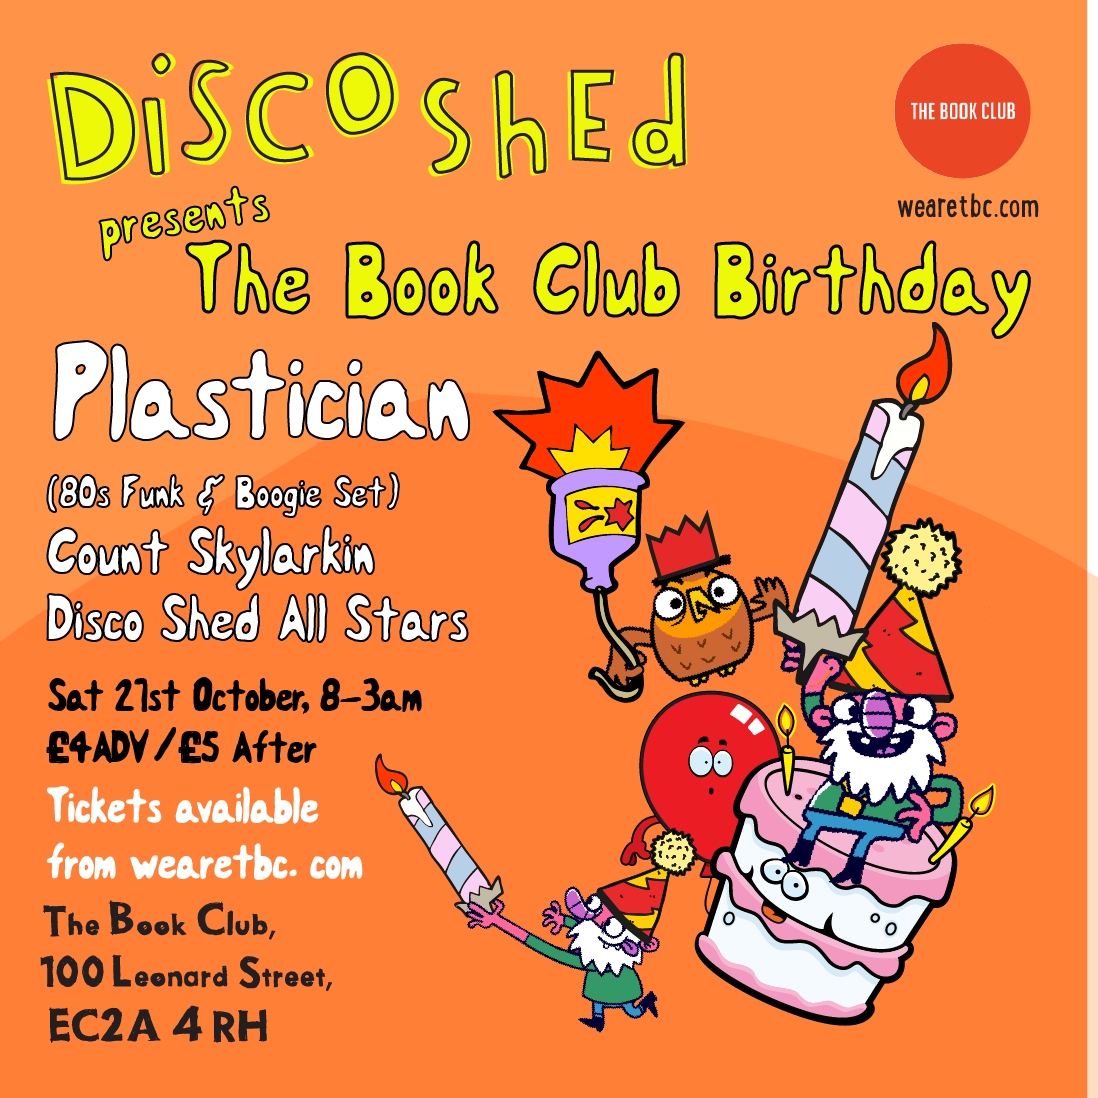 Disco Shed presents TBC's Birthday Party W/ Plastician (Funk & Boogie Set)